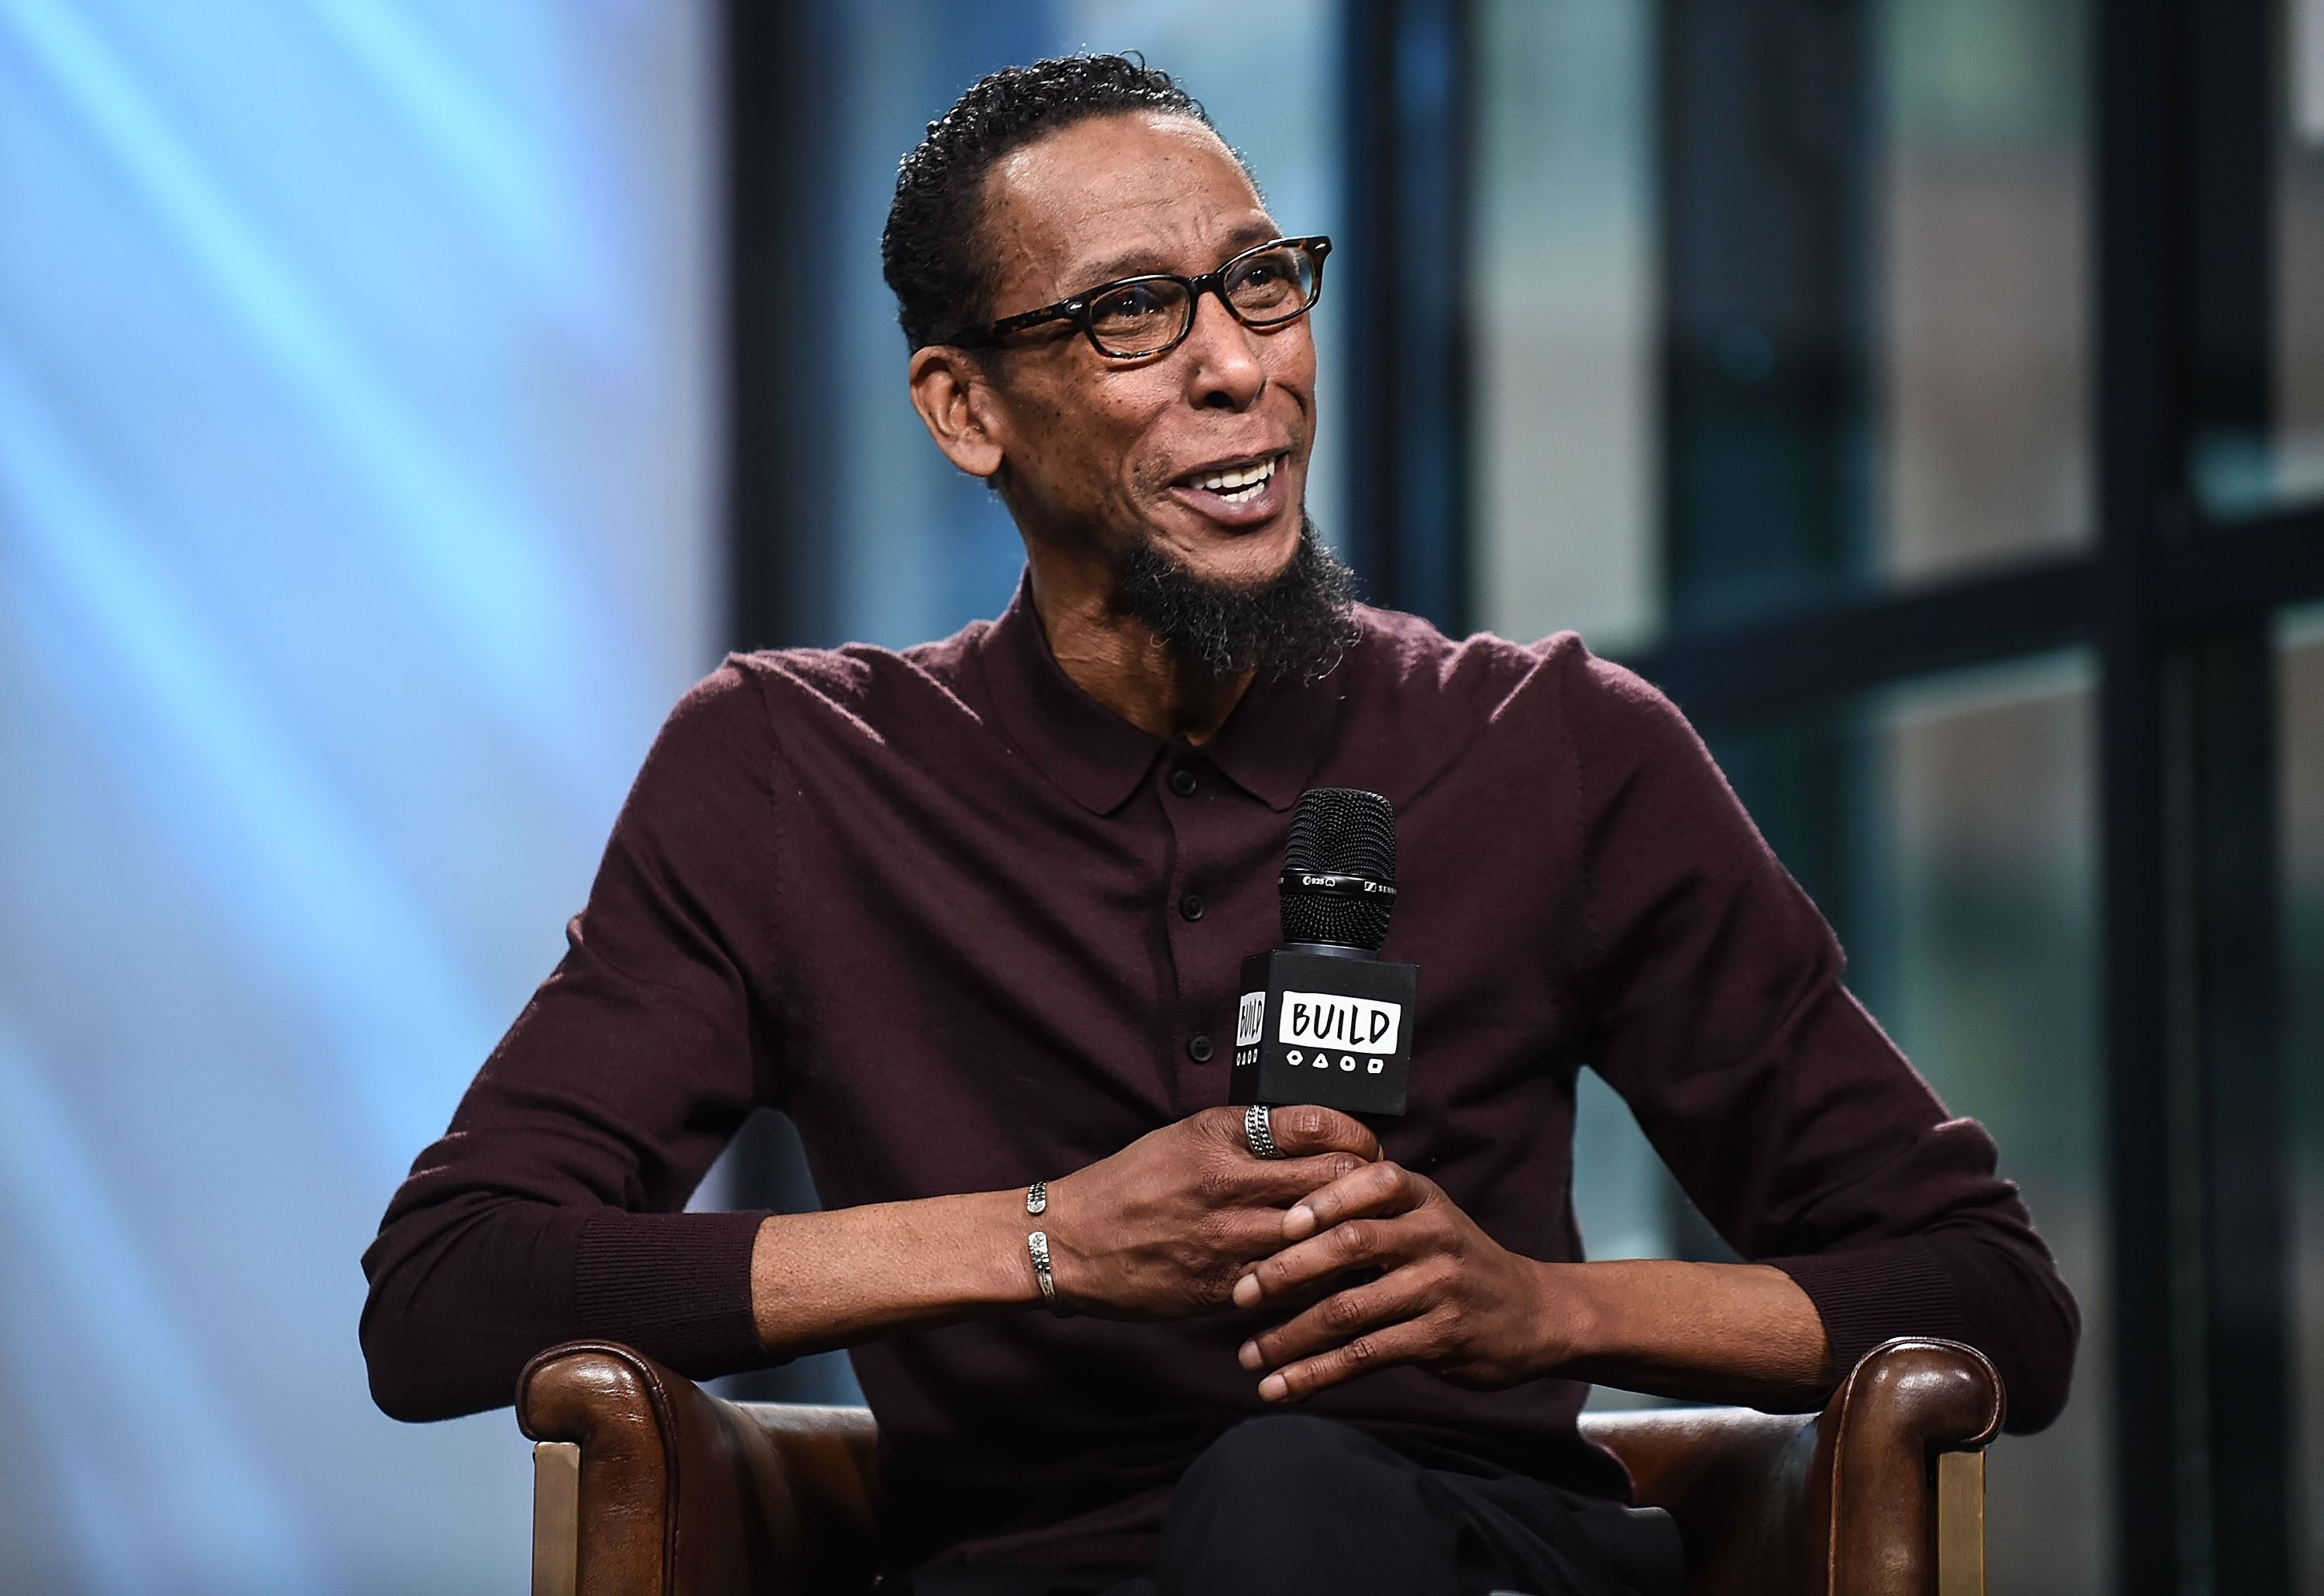 Ron Cephas Jones attends the Build Series to discuss the show 'This is Us' at Build Studio on May 16, 2017 in New York City. | Source: Getty Images